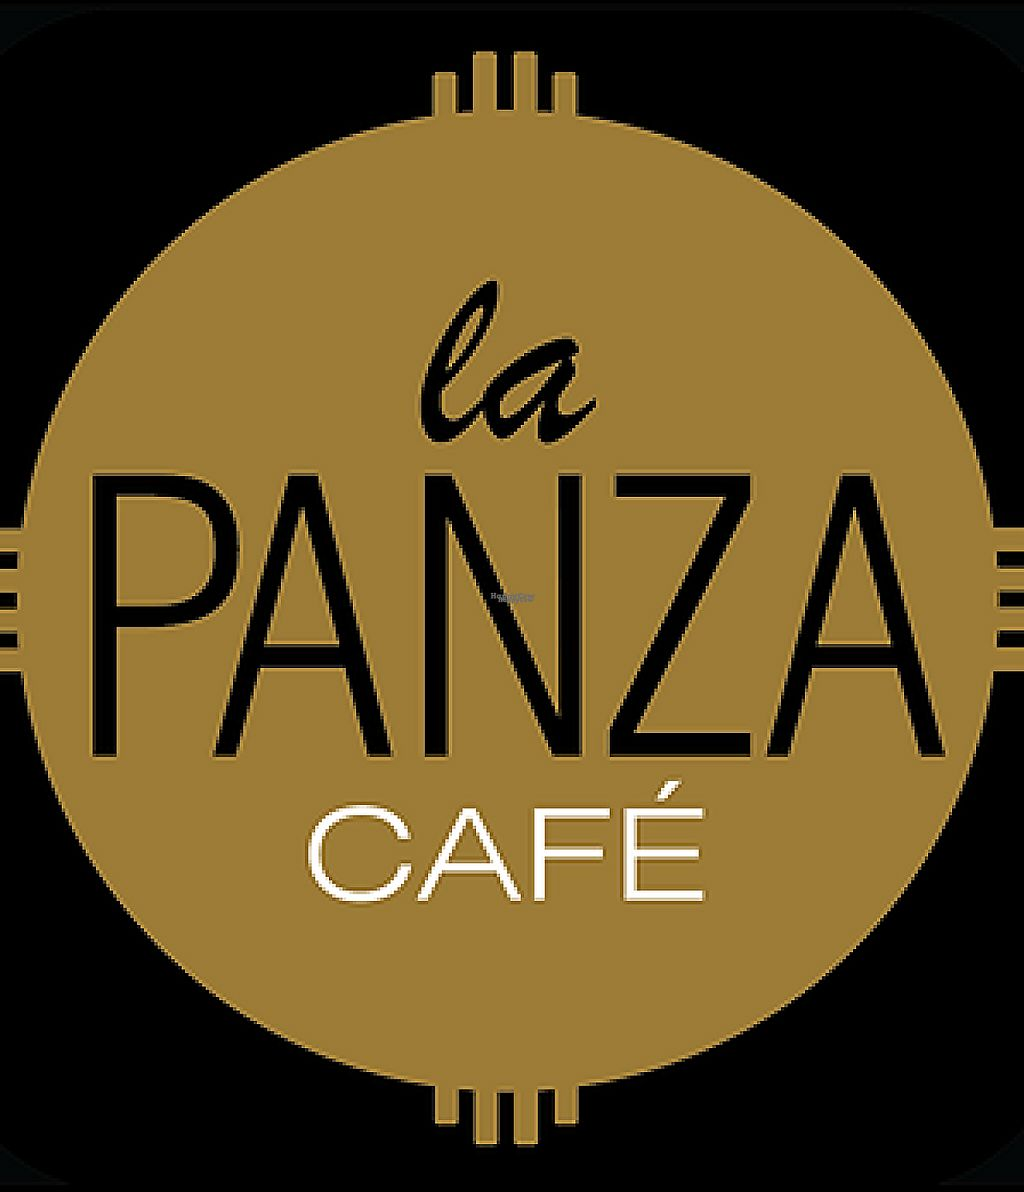 "Photo of La Panza Cafe  by <a href=""/members/profile/kellycostas"">kellycostas</a> <br/>Yummmm <br/> February 23, 2017  - <a href='/contact/abuse/image/86508/229755'>Report</a>"